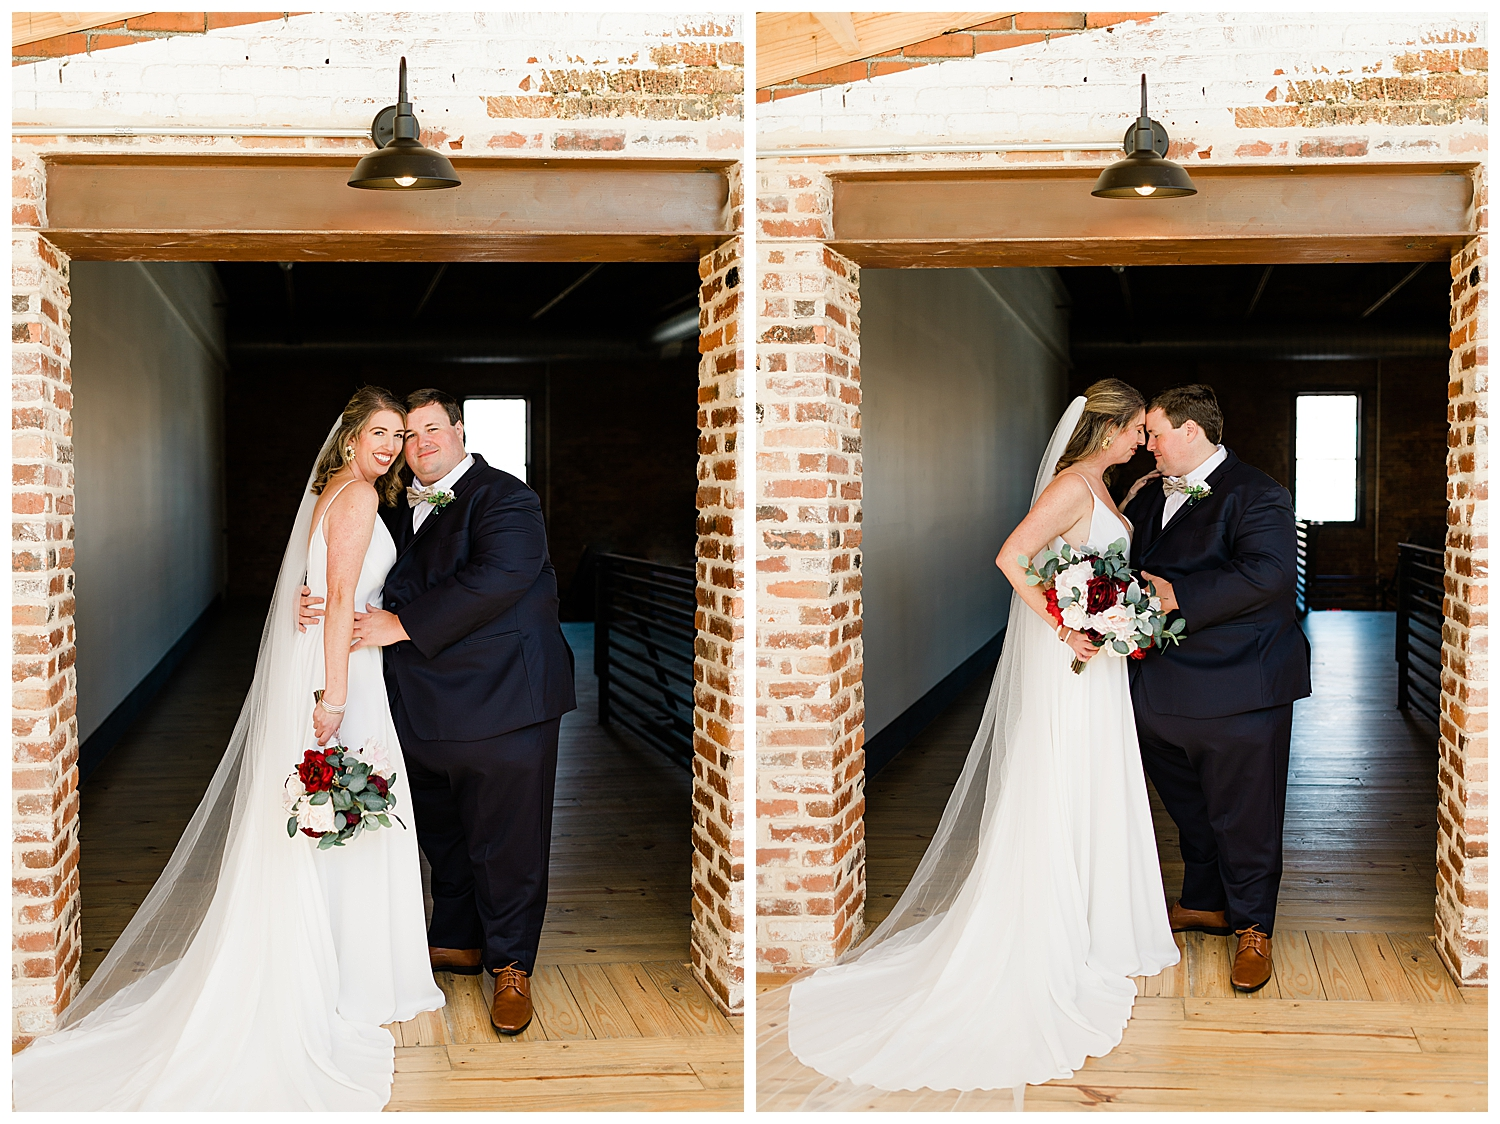 Downtown Macon Wedding at Fall Line Station by C. Hope Photography